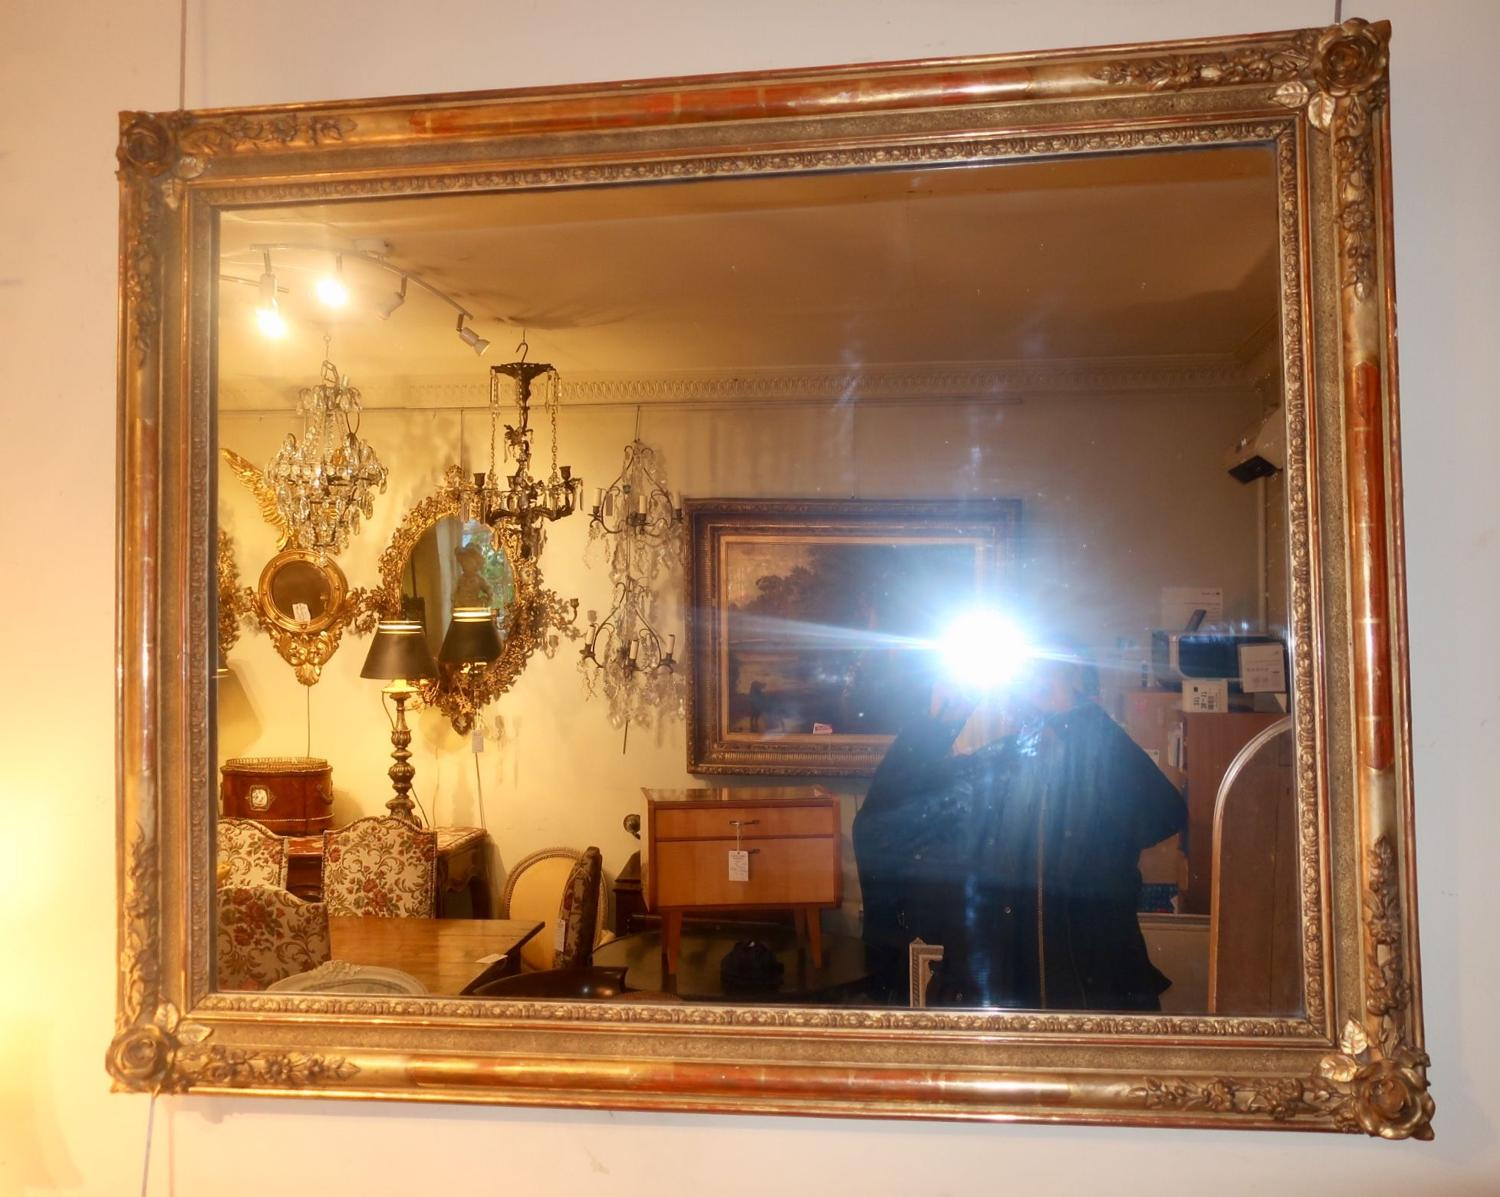 19th Century landscape mirror